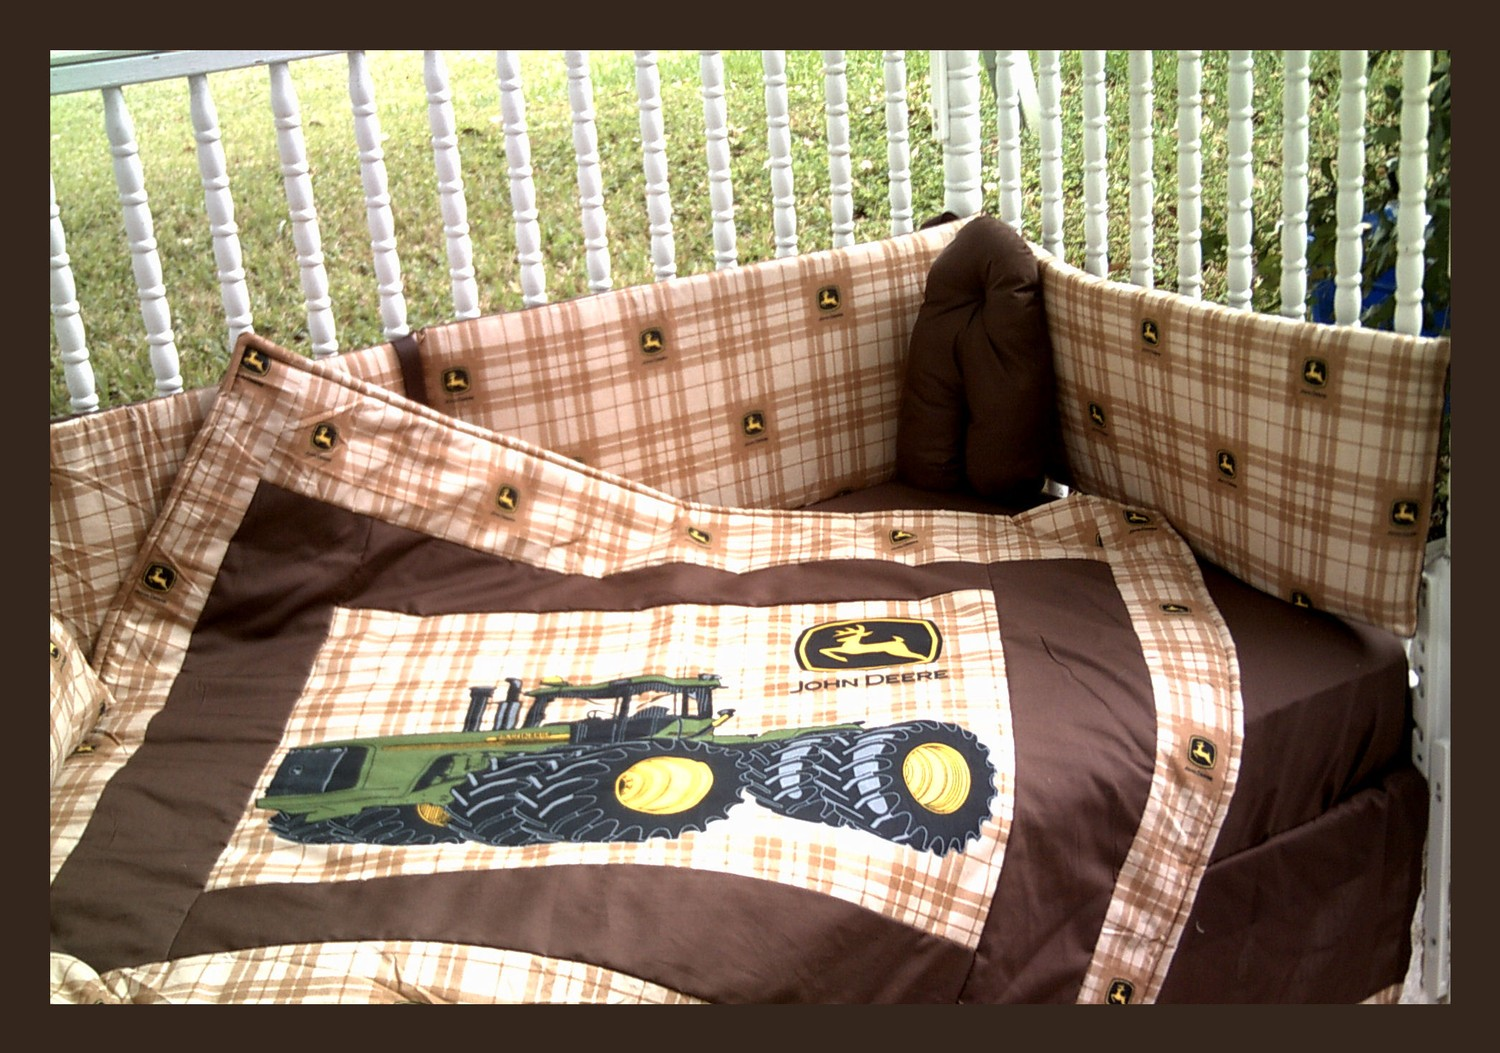 John Deer Tractor Bed | John Deere Bedding | John Deere Bed Sheets